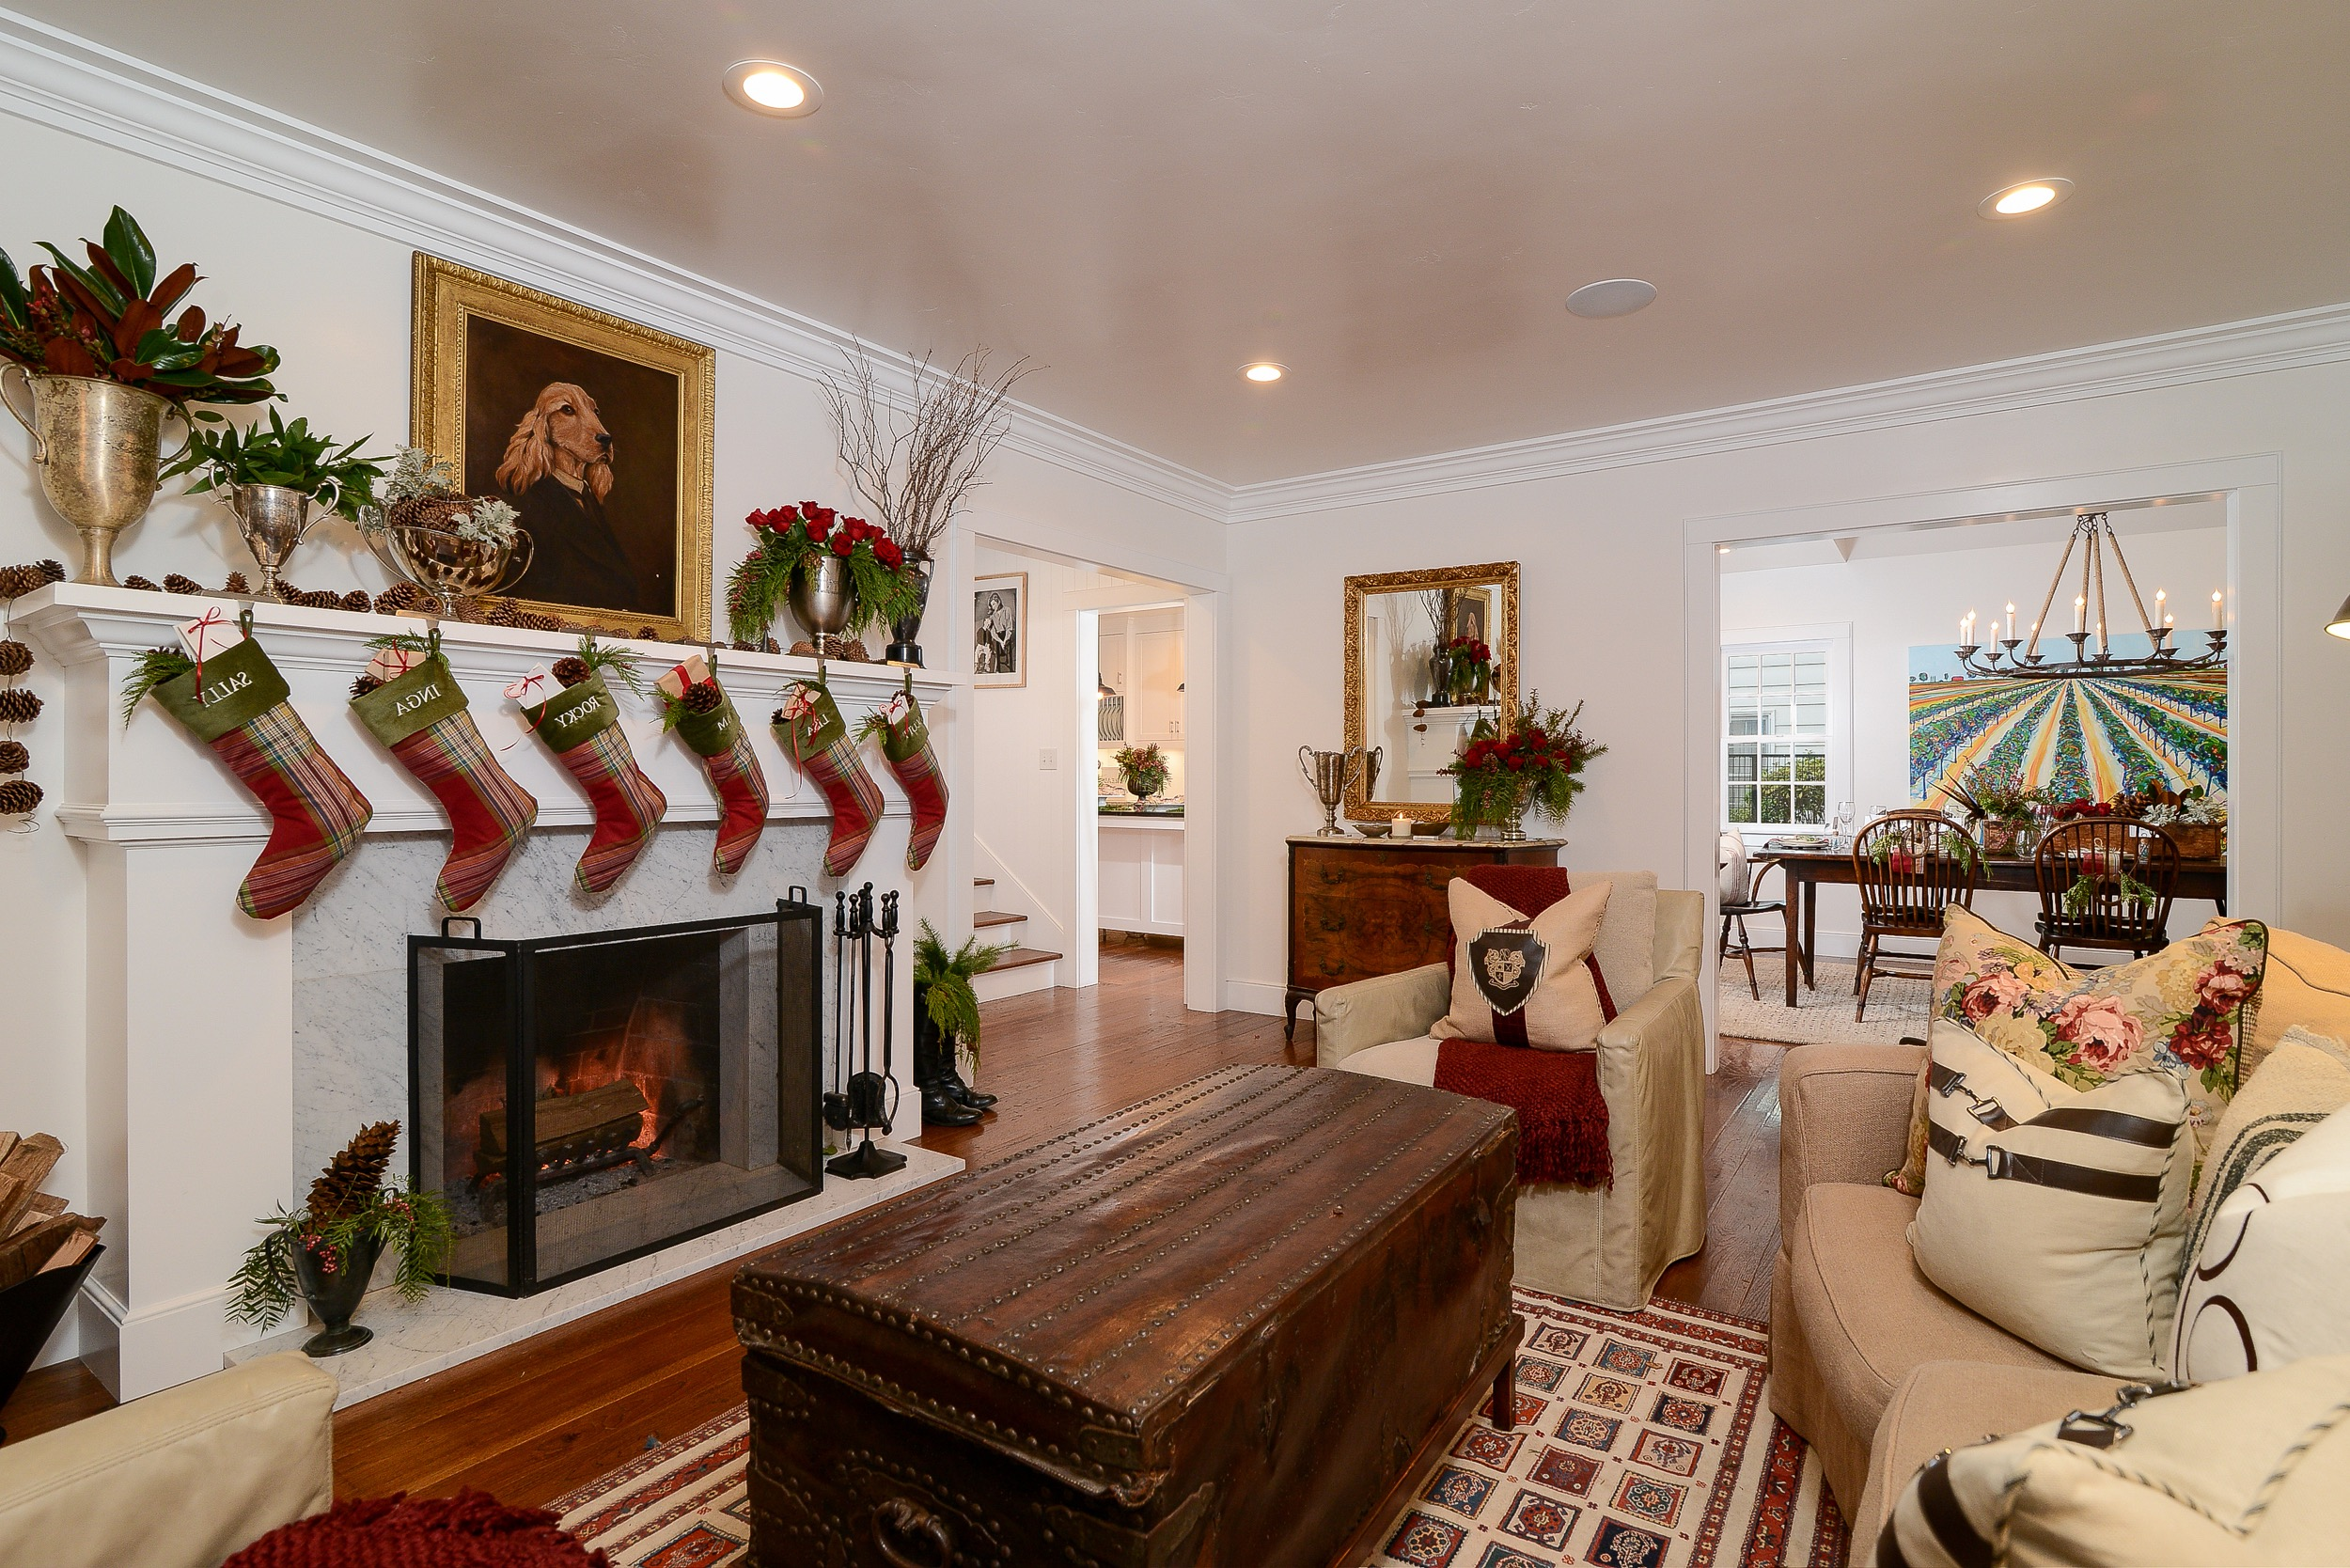 Country Christmas Living Room With Plaid Stockings (Image 4 of 18)